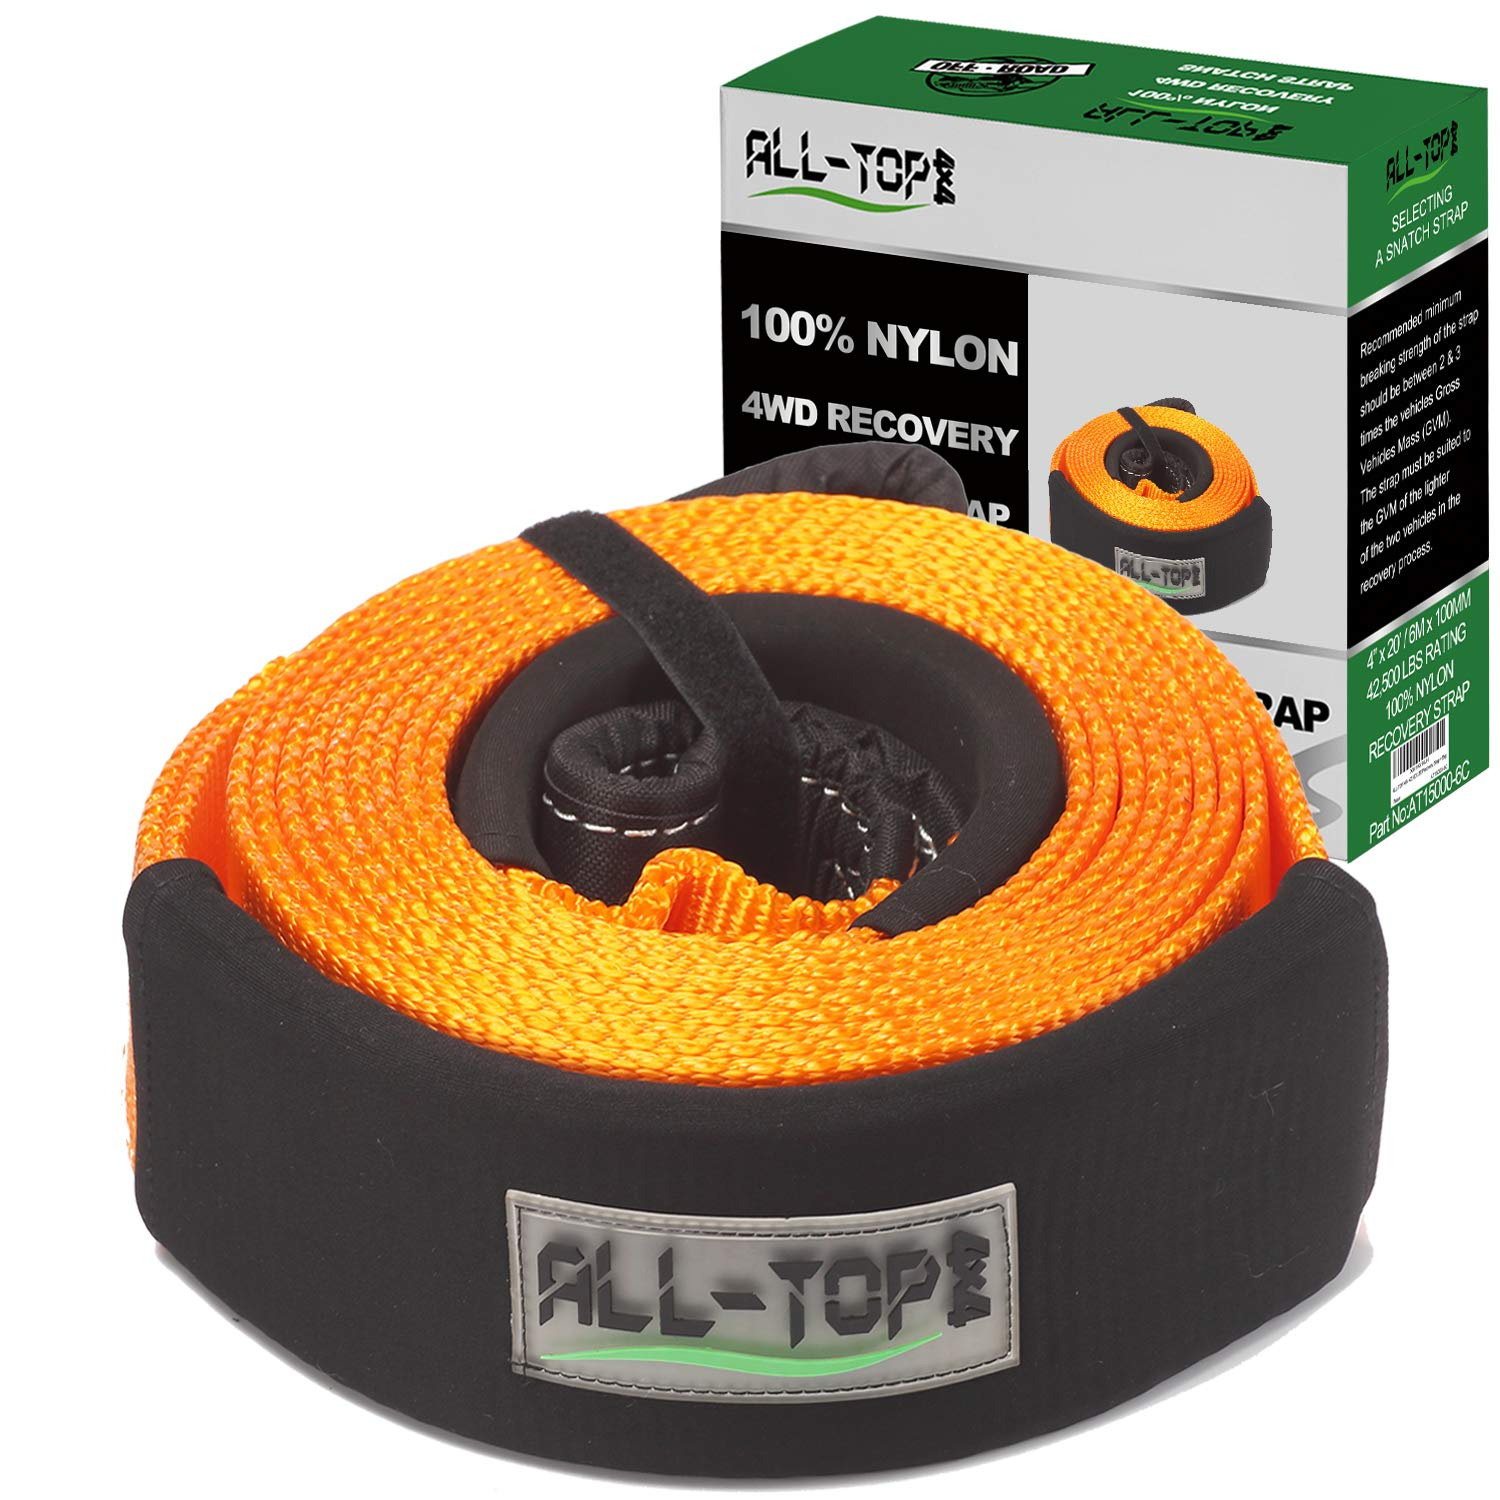 ALL-TOP Extreme Duty Nylon Recovery Strap - 4'' x 20' - Towing Snatch Strap (42,500 lbs) 100% Nylon and 22% Elongation by ALL-TOP